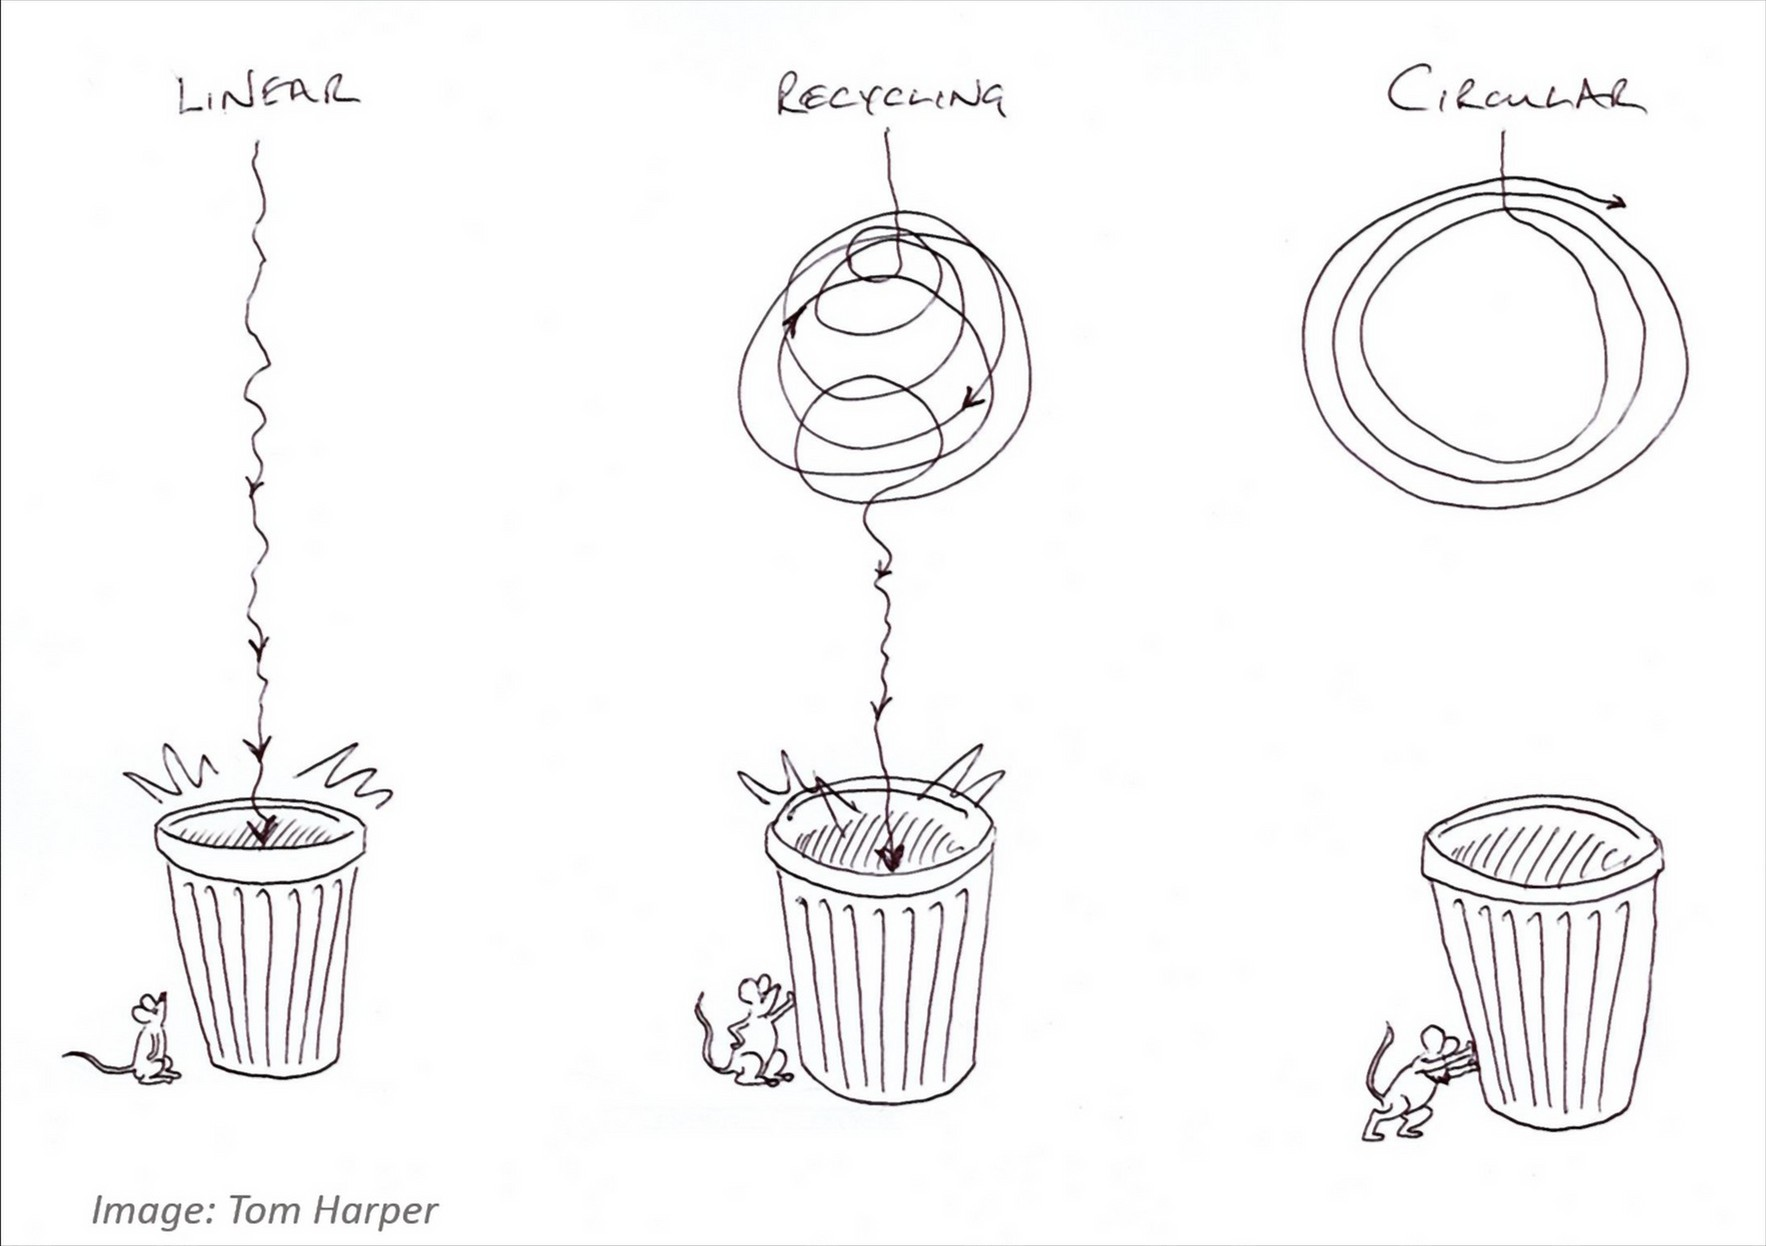 The Best Circular Strategy Is Not Recycling